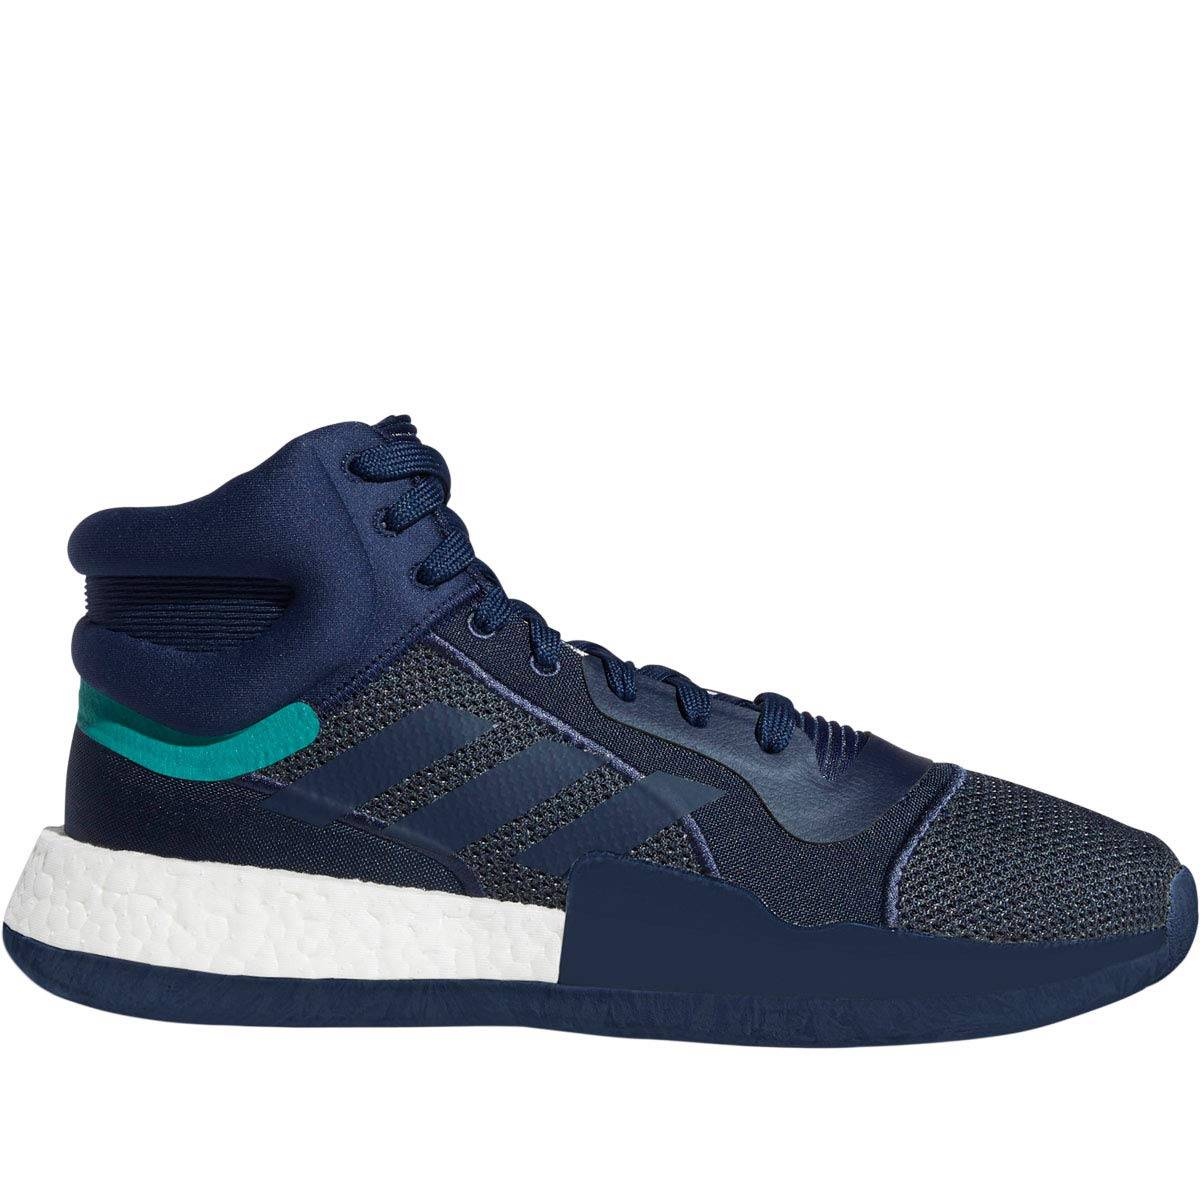 Adidas Marquee Boost Boost Boost 48 2 3-UK 13 cd4f19